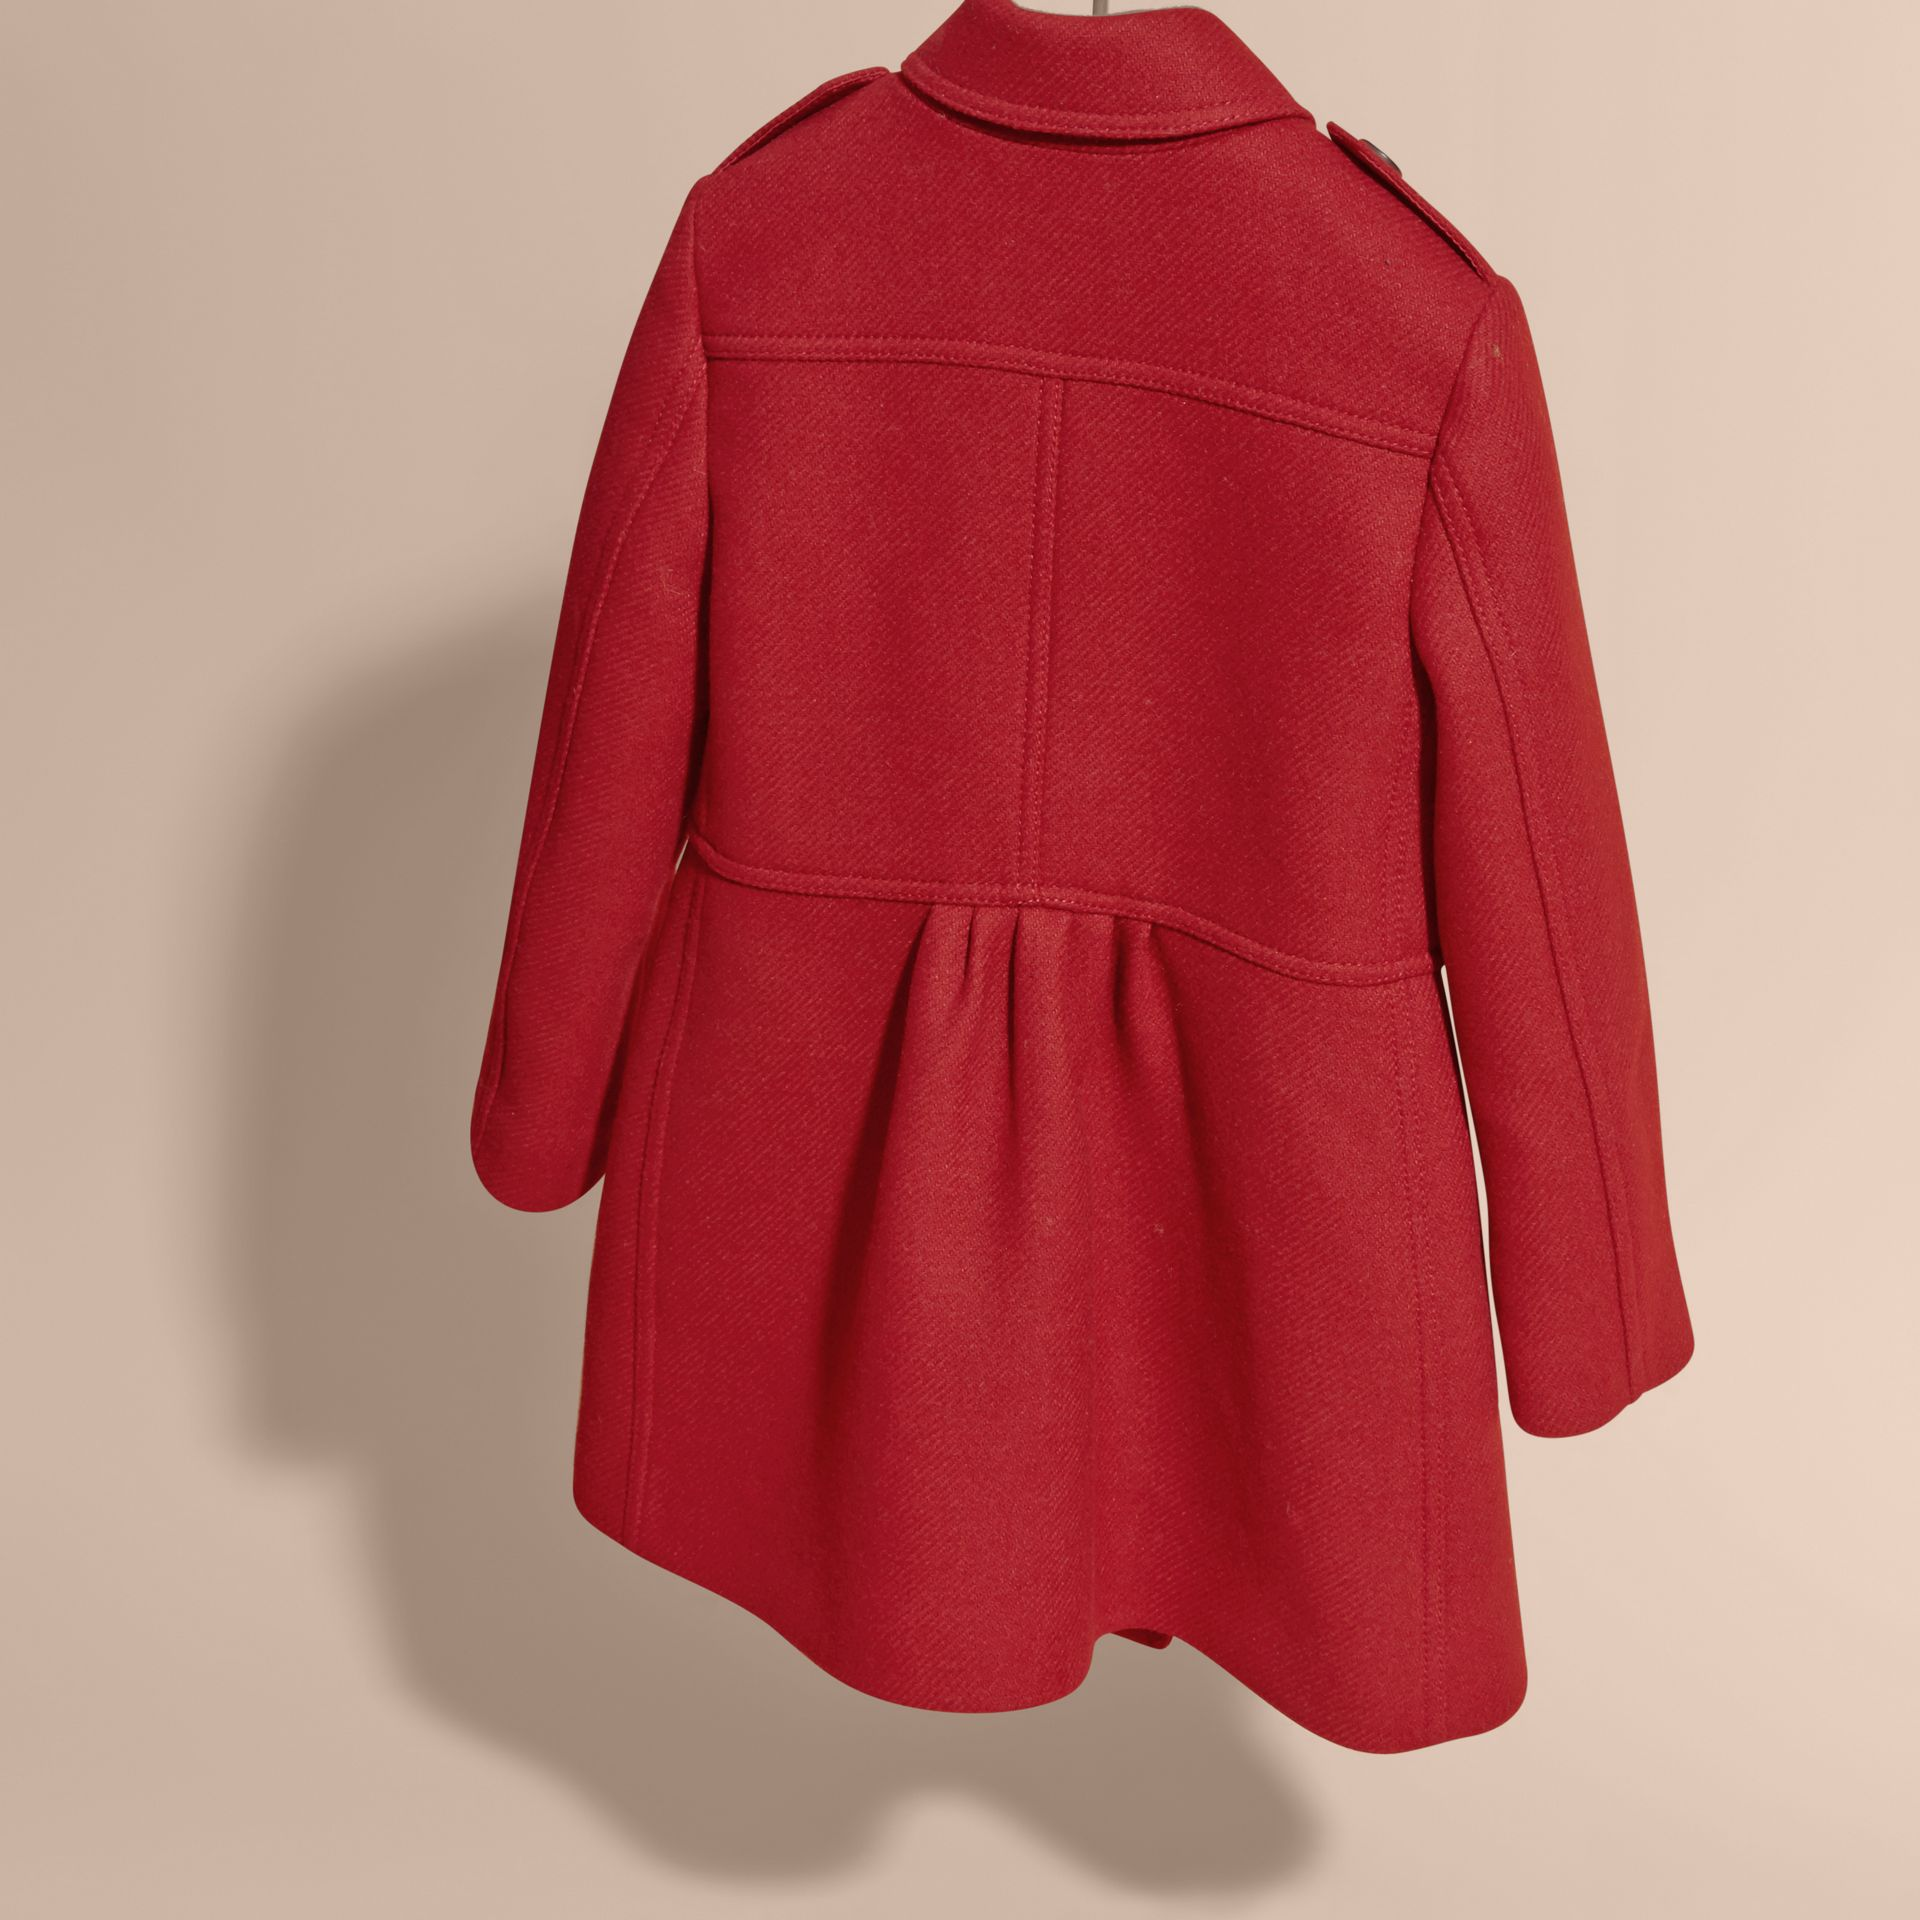 Damson red Tailored Wool Cashmere Blend Coat - gallery image 4